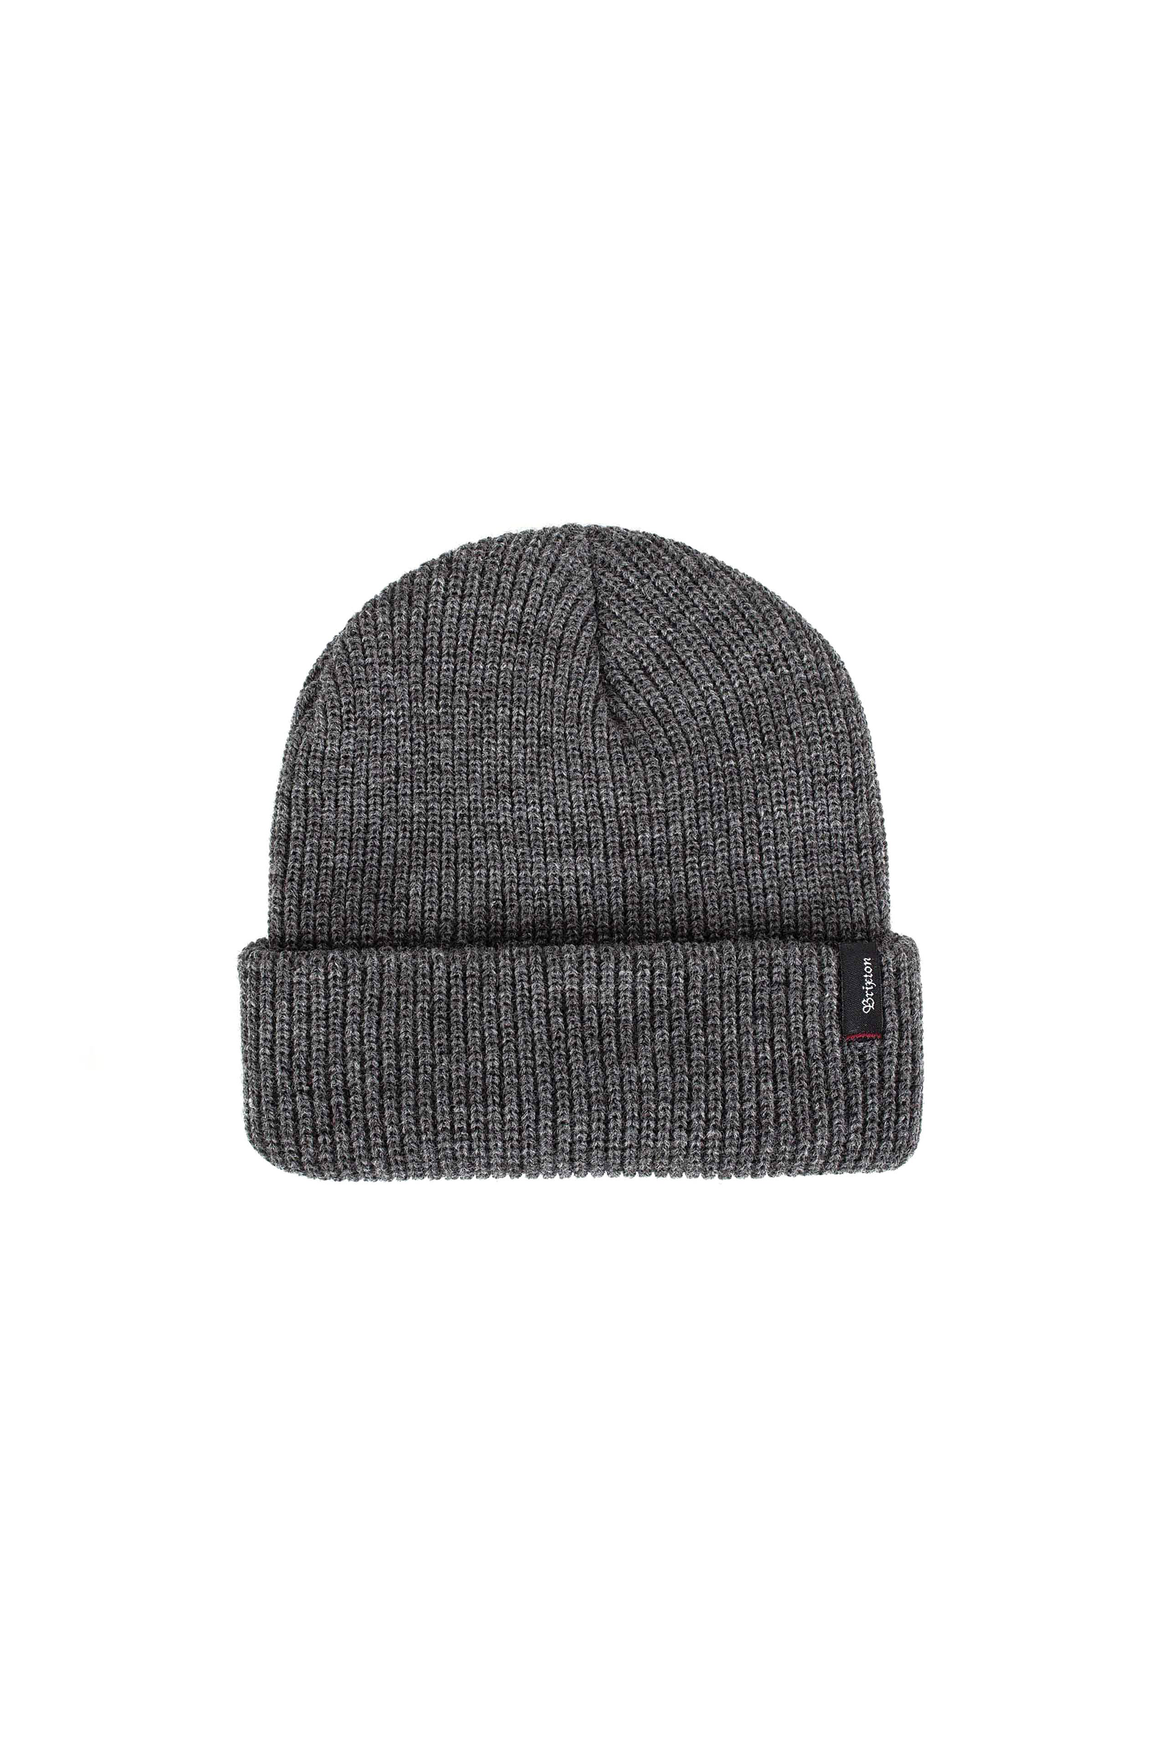 Heist Beanie in Heather Grey